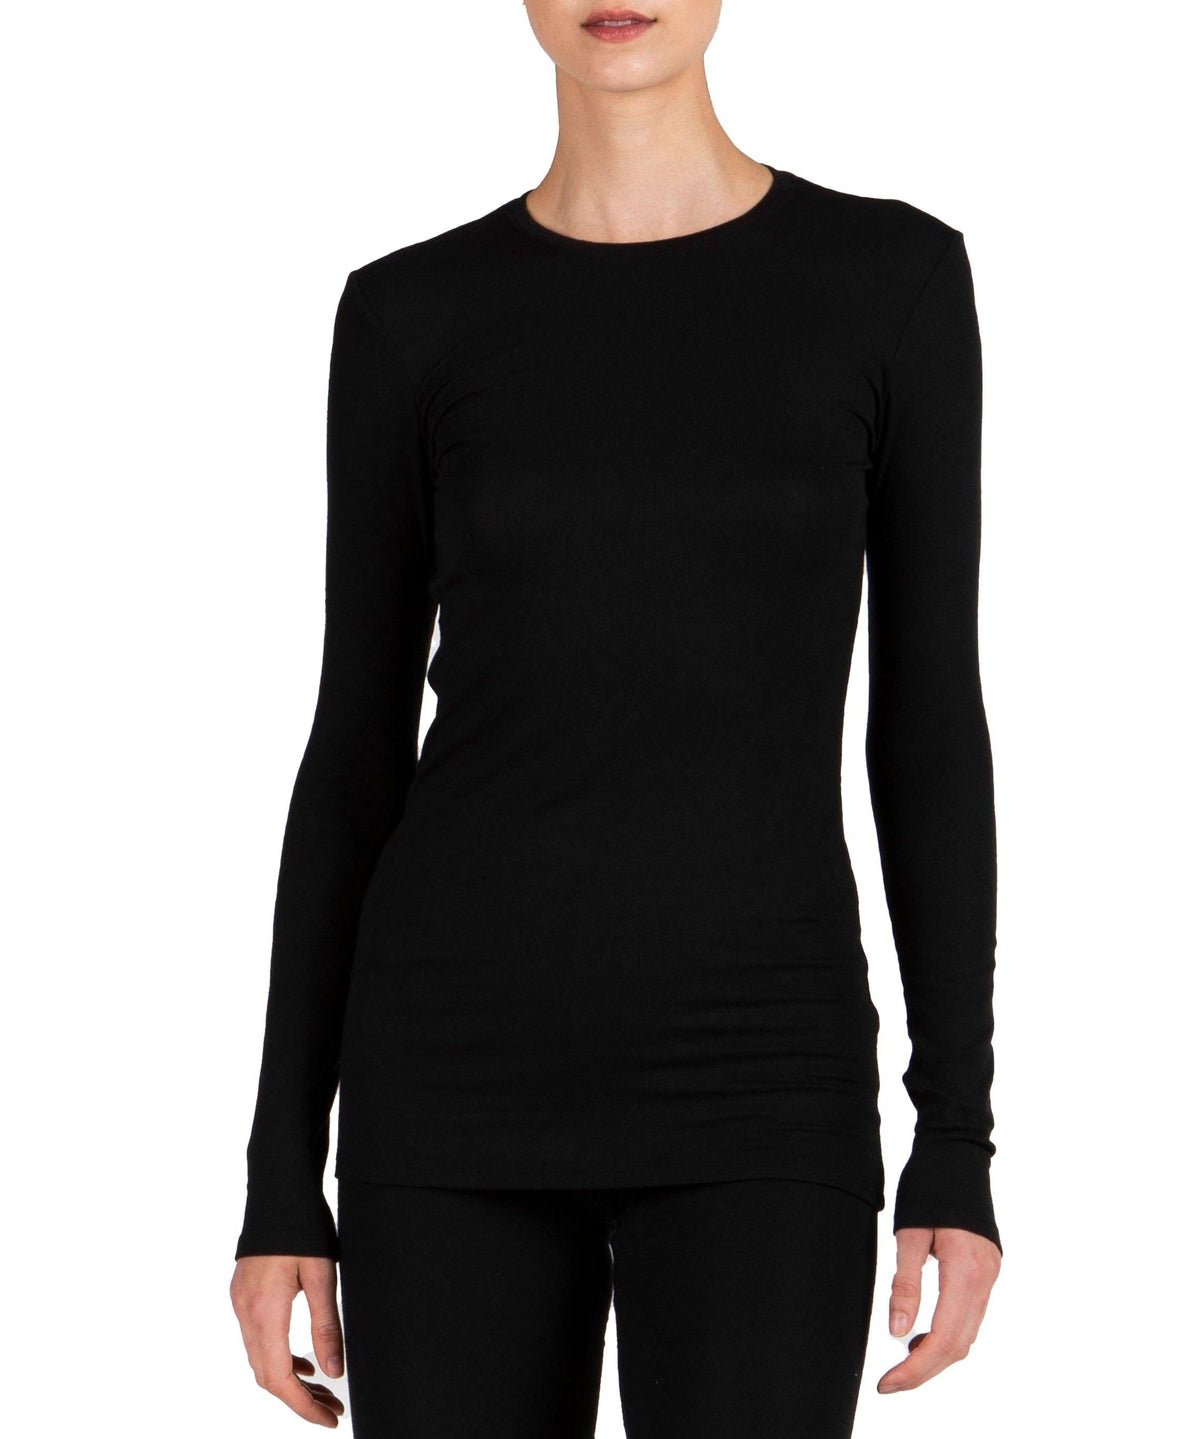 Ribbed Long Sleeve Tee - Black - Wheat Boutique